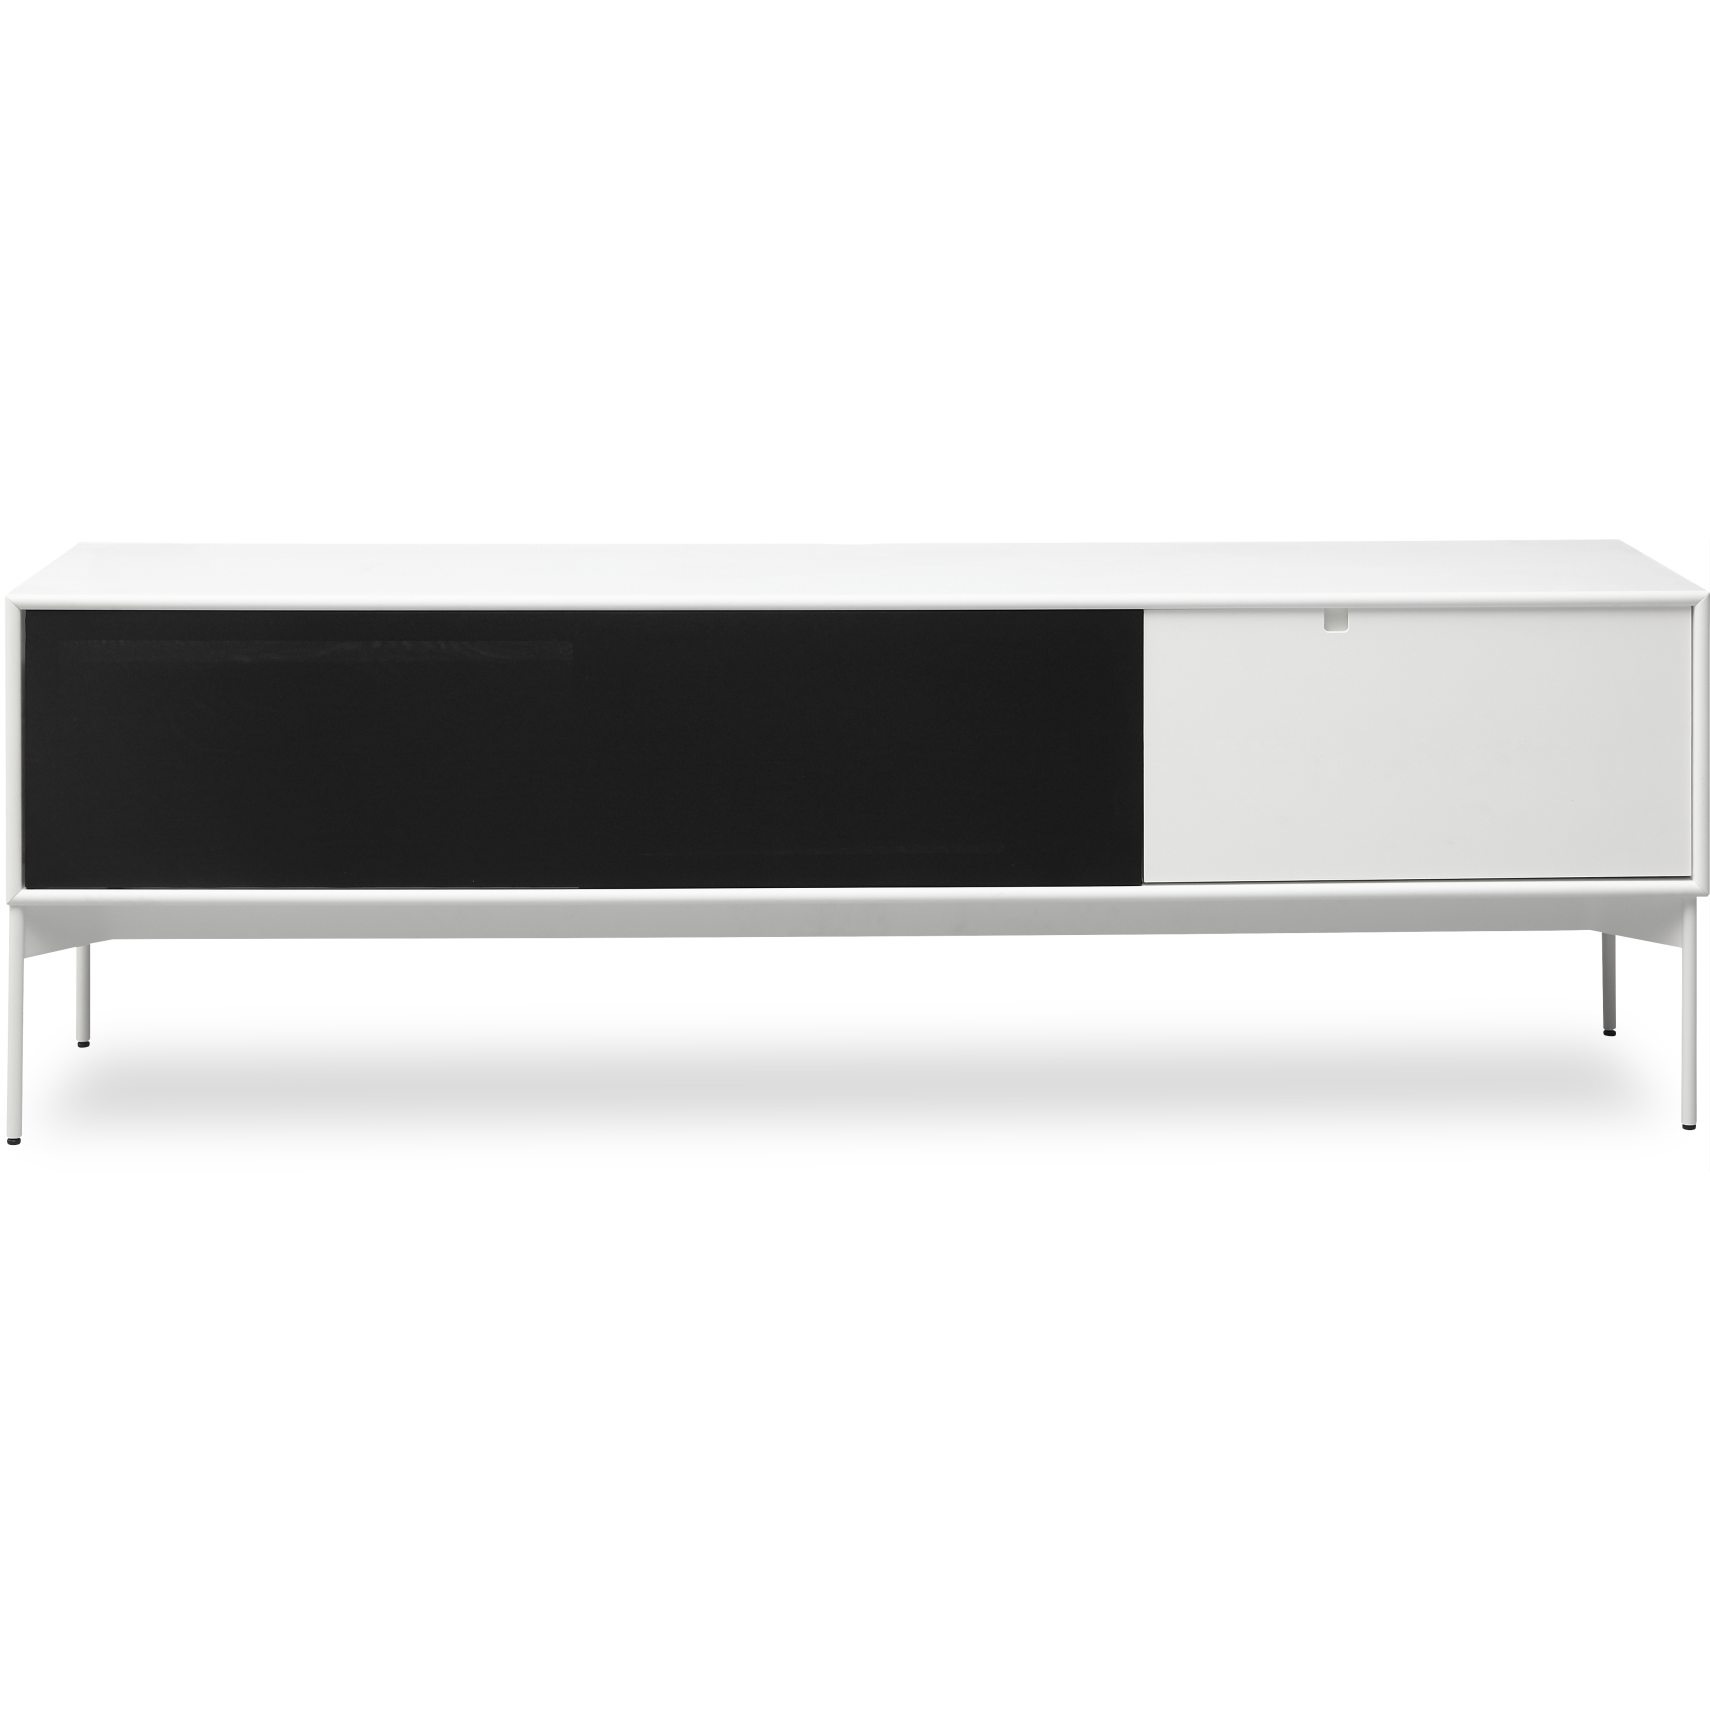 Kube TV unit - TV unit